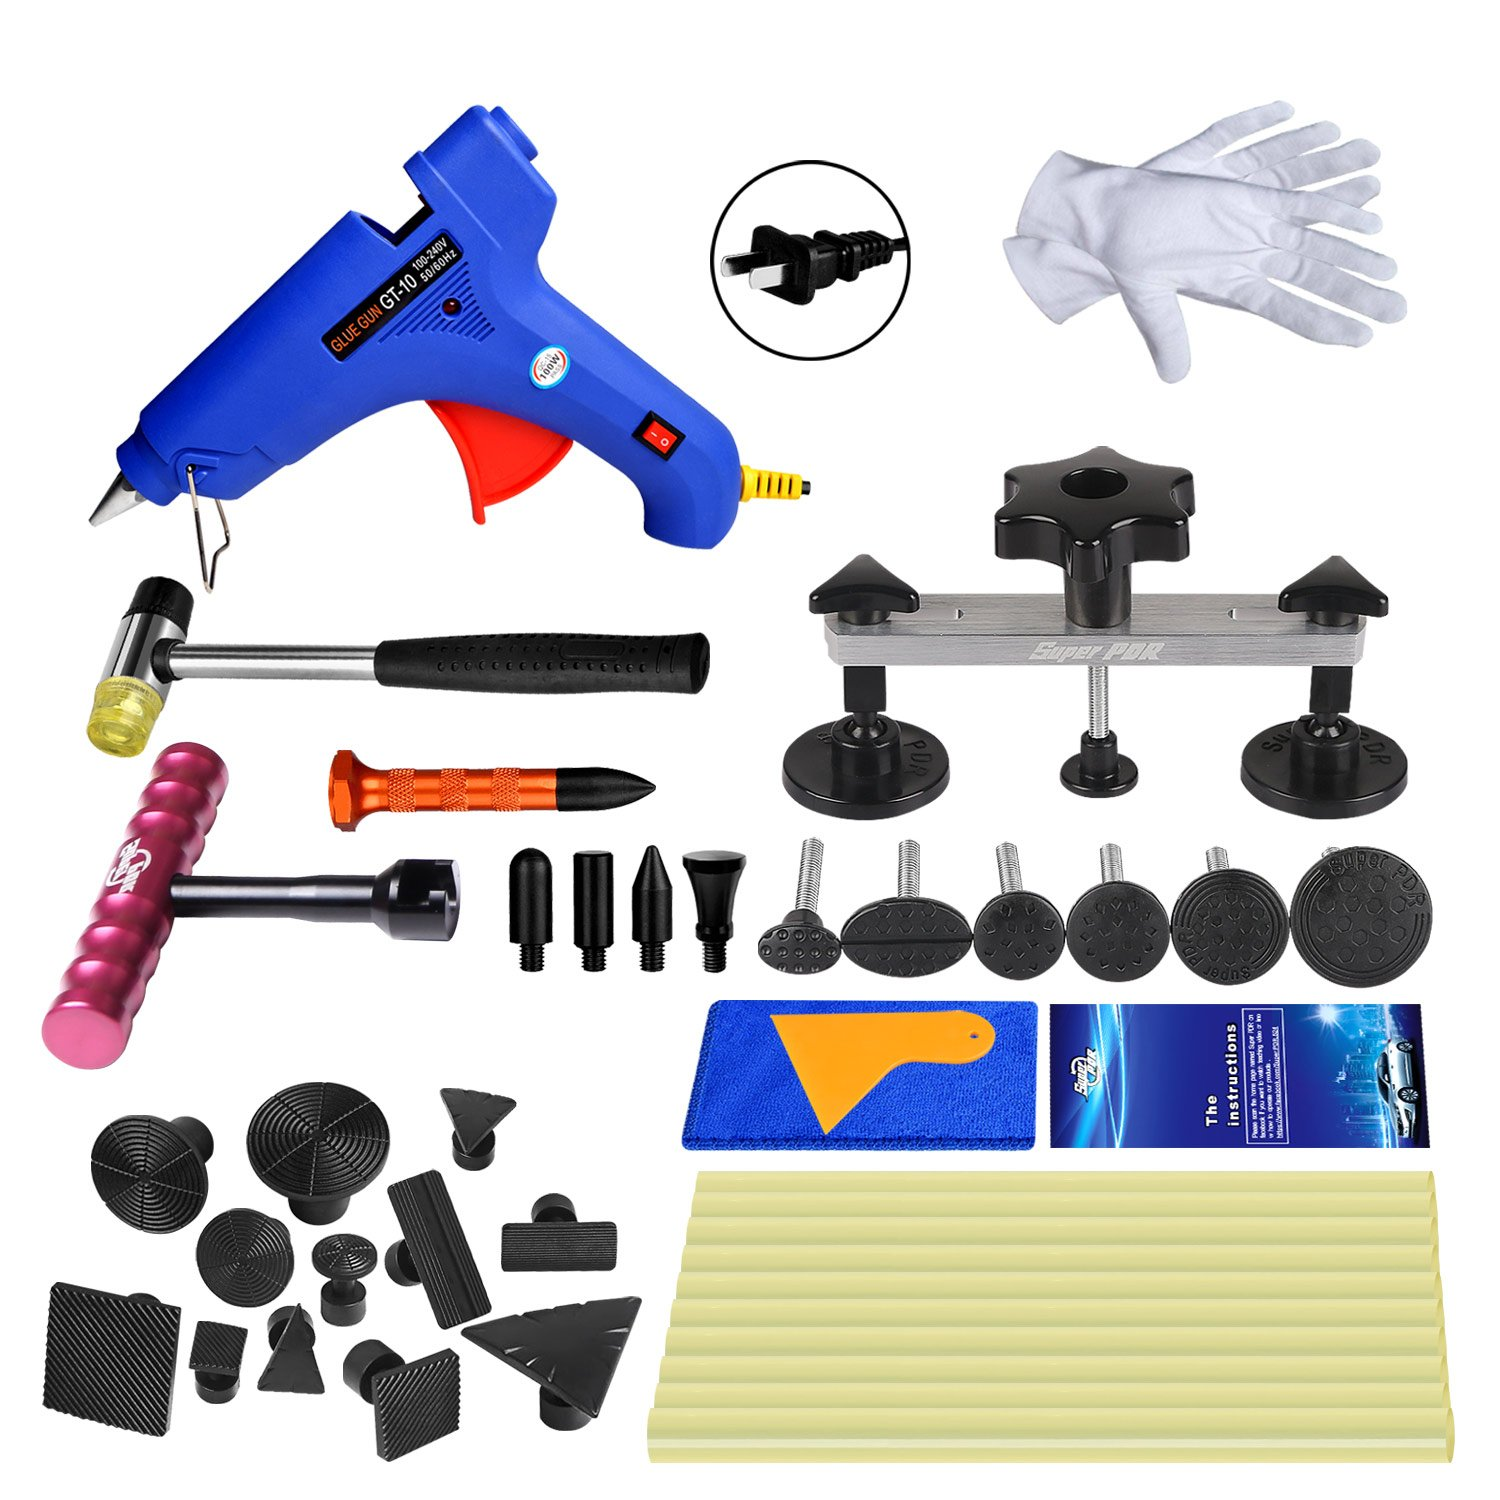 Super PDR Dent Puller Kit, 50pcs Auto Paintless Dent Repair Kit Dent Removal Kit with Tool Bag Dent Remover